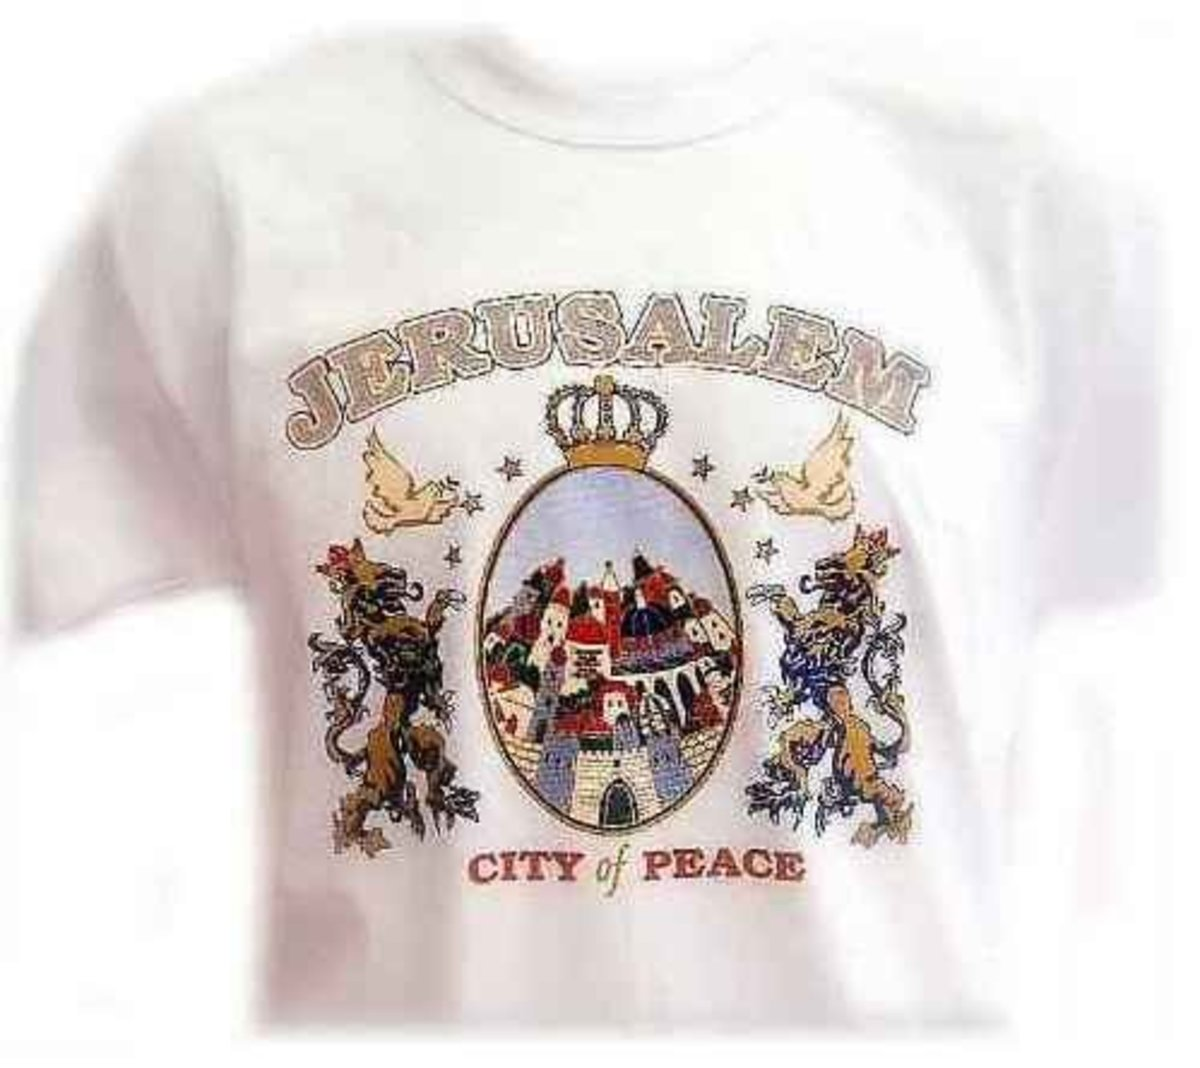 Jerusalem City of Peace T-Shirt